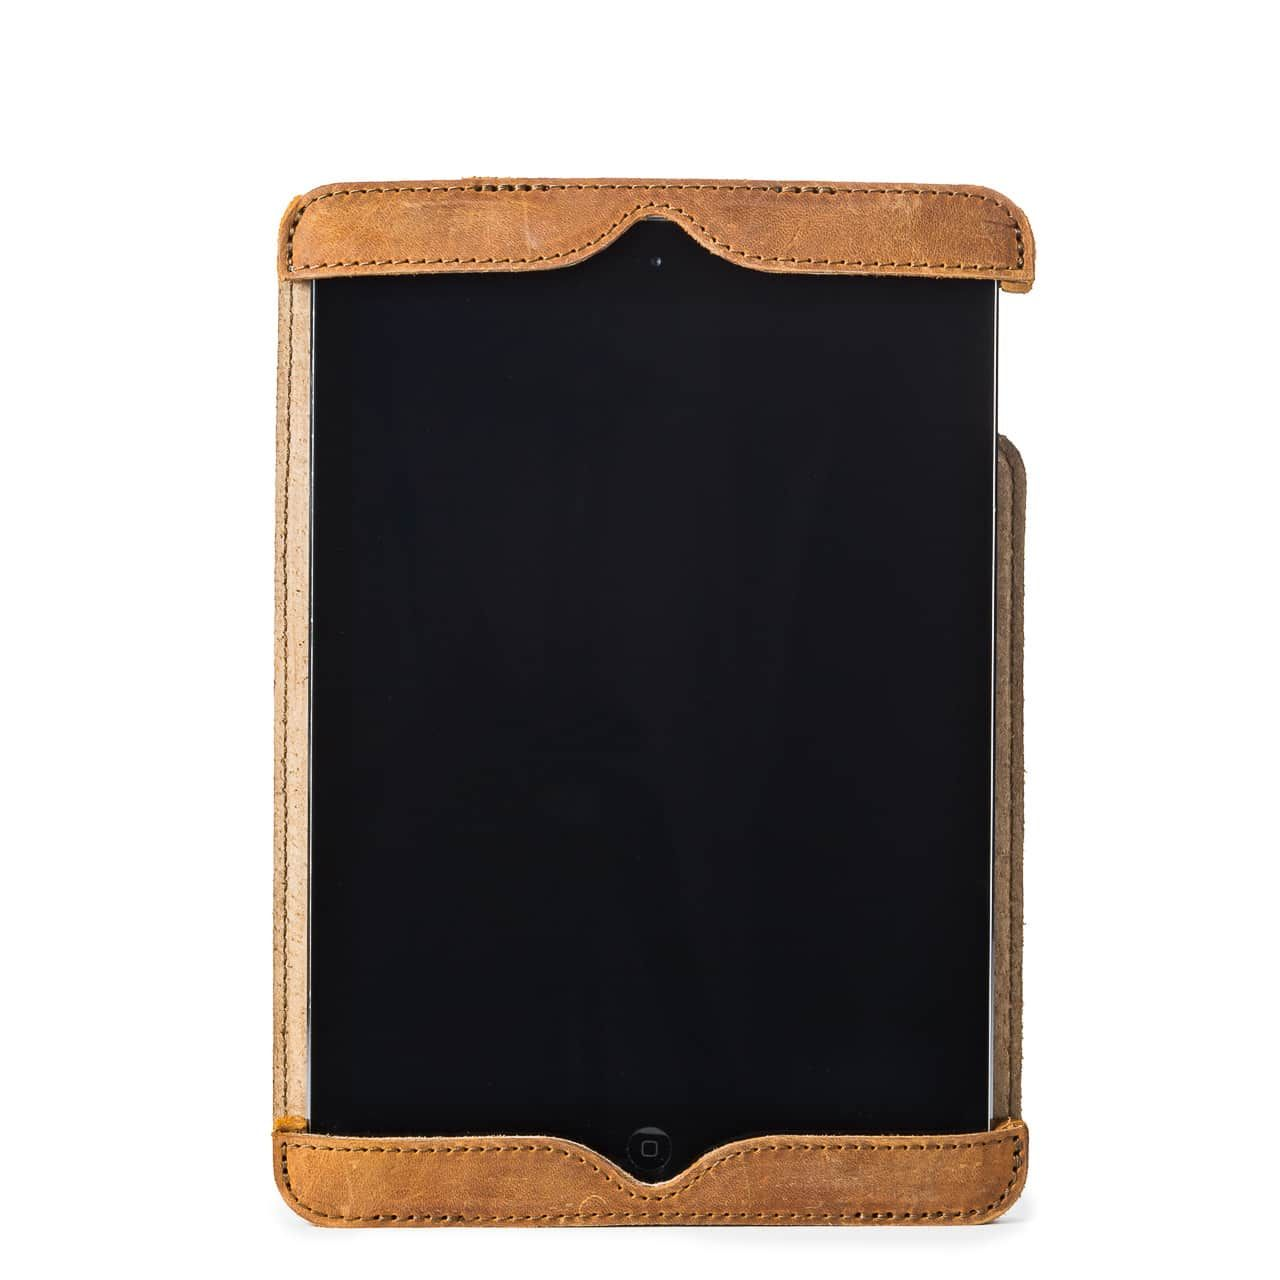 Simple iPad Case in color Tobacco from with front with an iPad